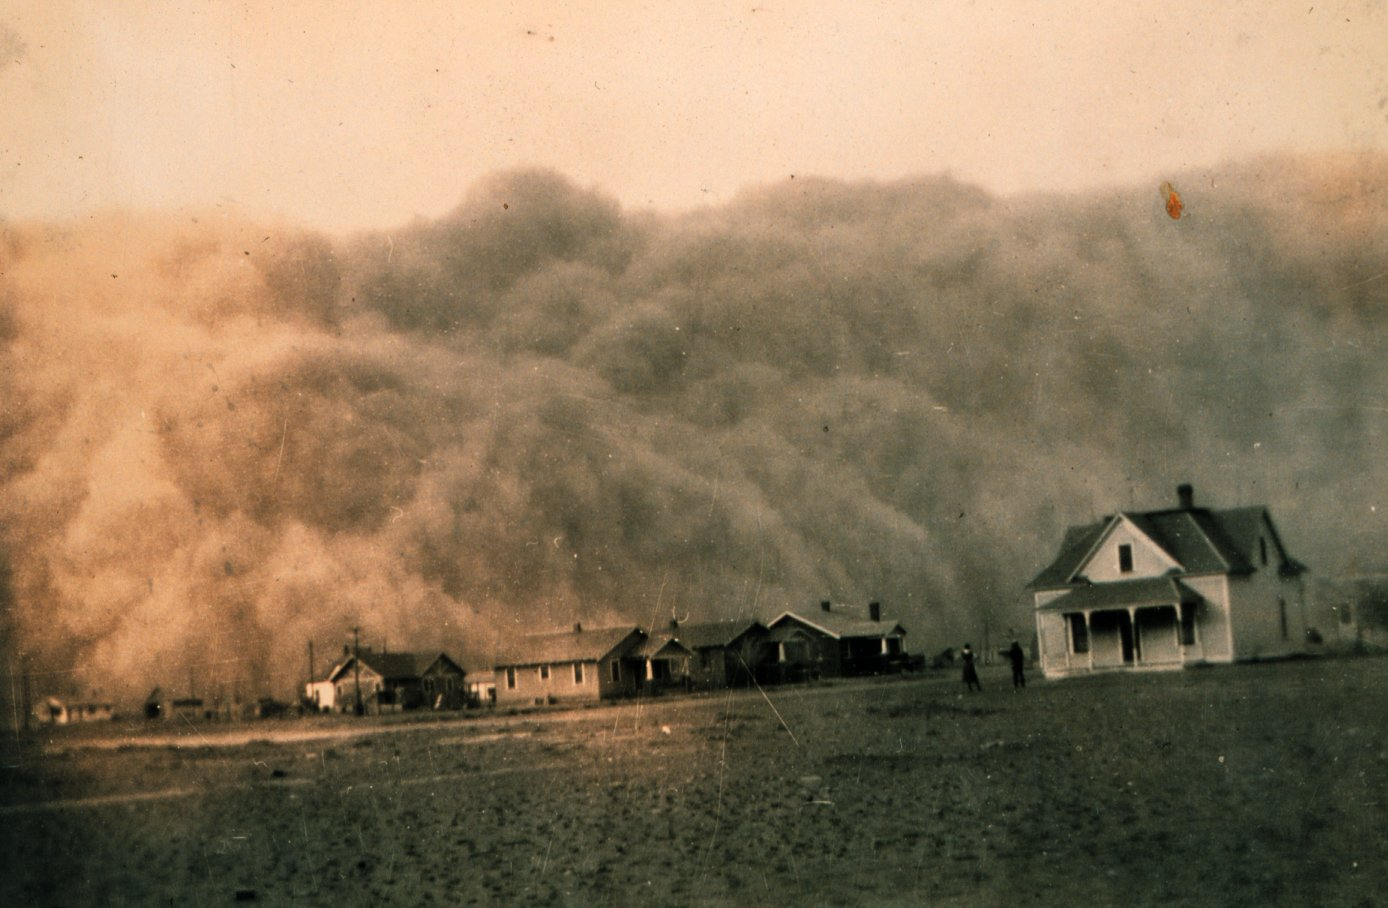 1000+ images about The Dust Bowl on Pinterest.